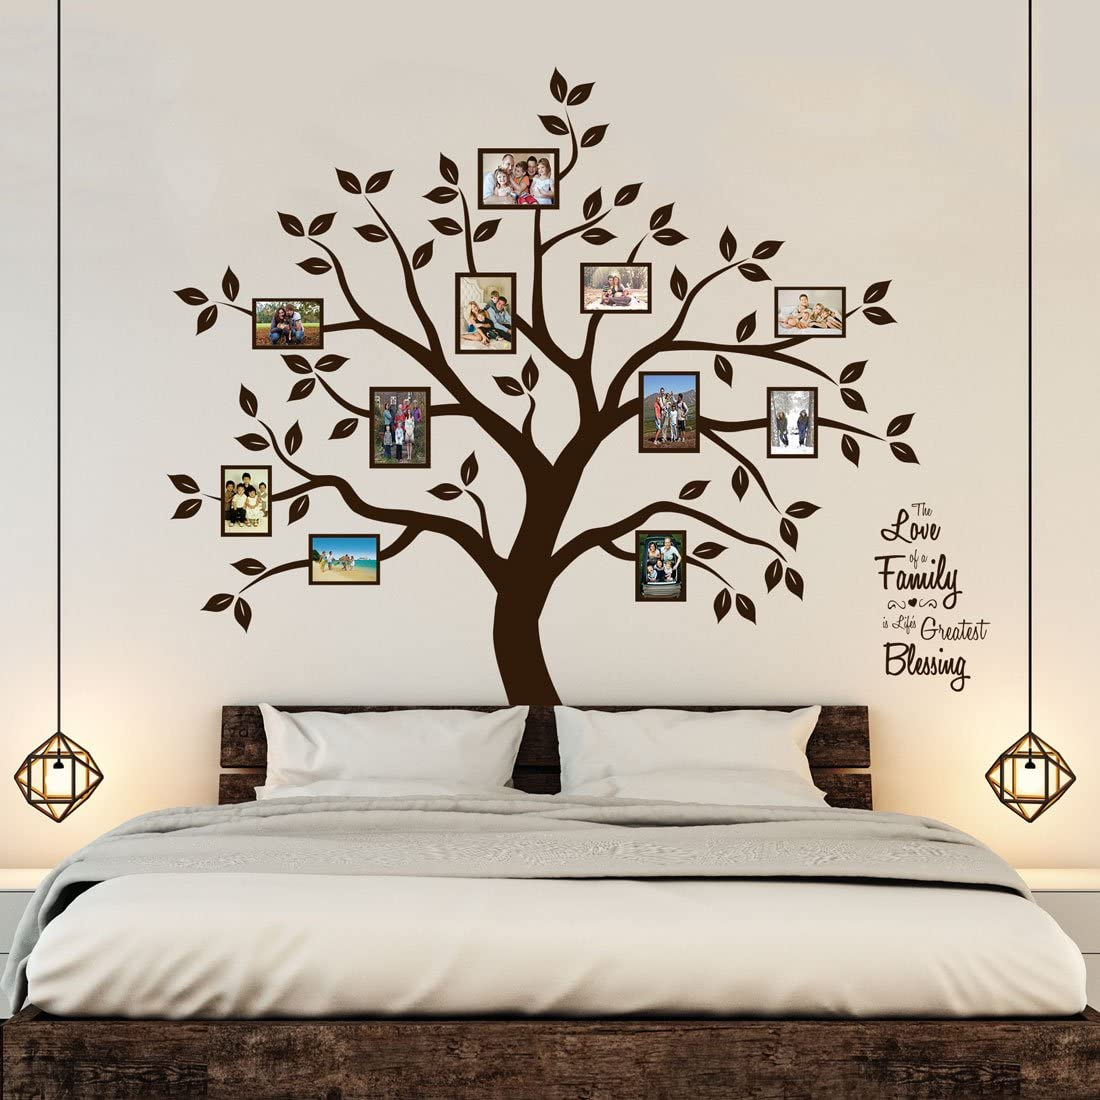 Family Wall Decal Family Wall Decal Decor by Shop Simply Perfect Vinyl Wall Decor